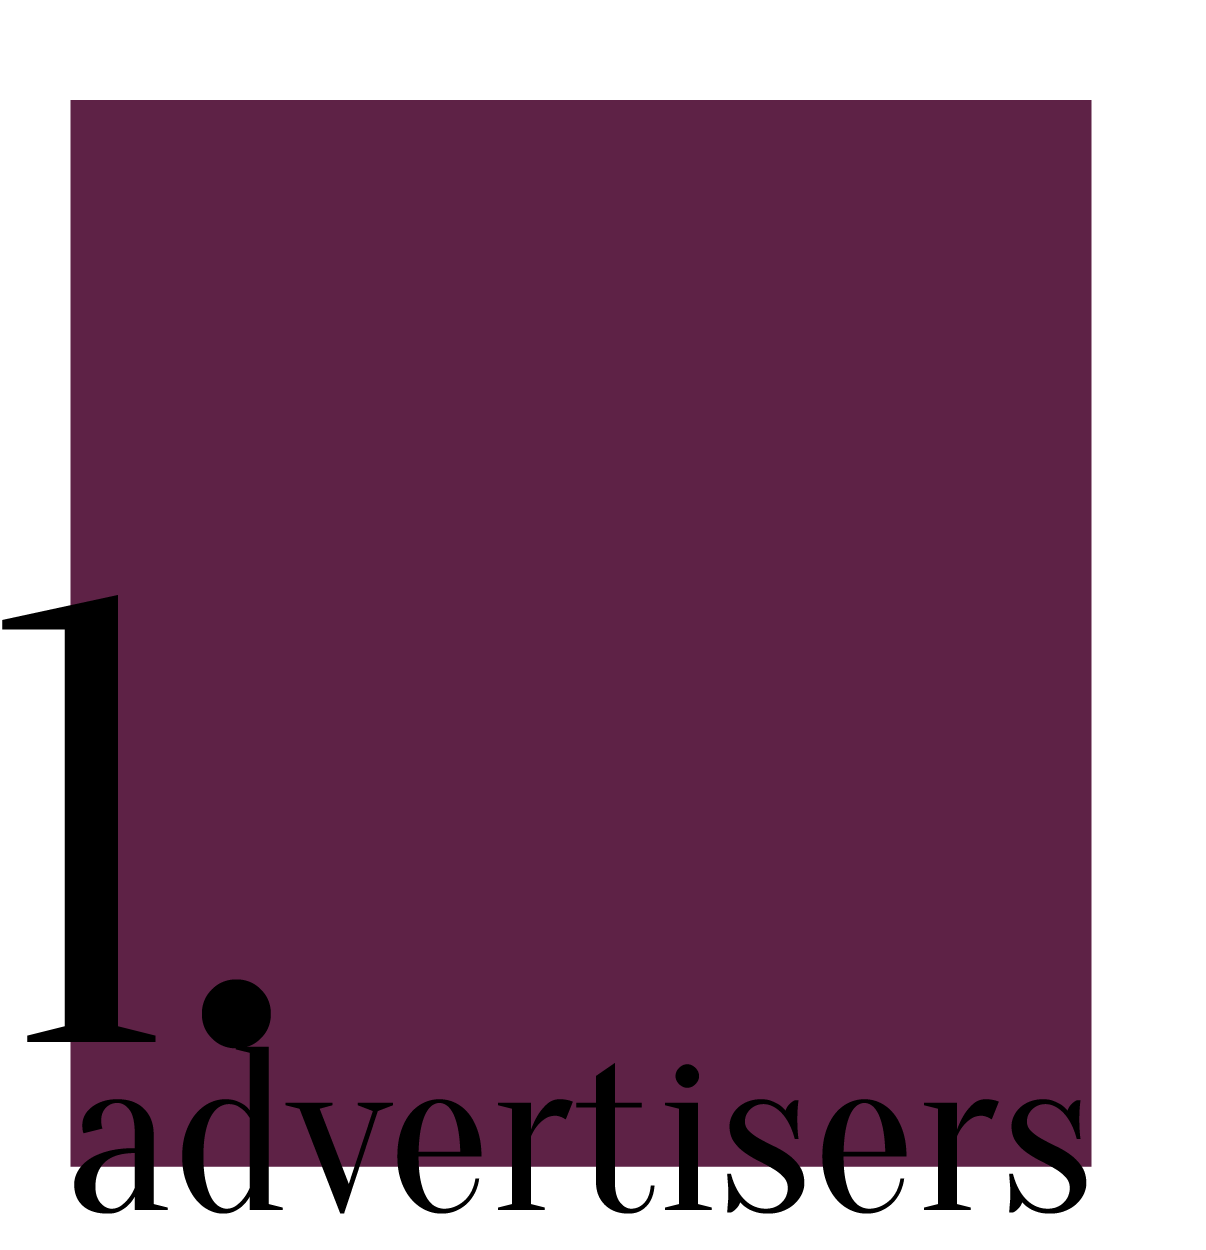 Advertisers l Black Owned & Company l Black Owned Business